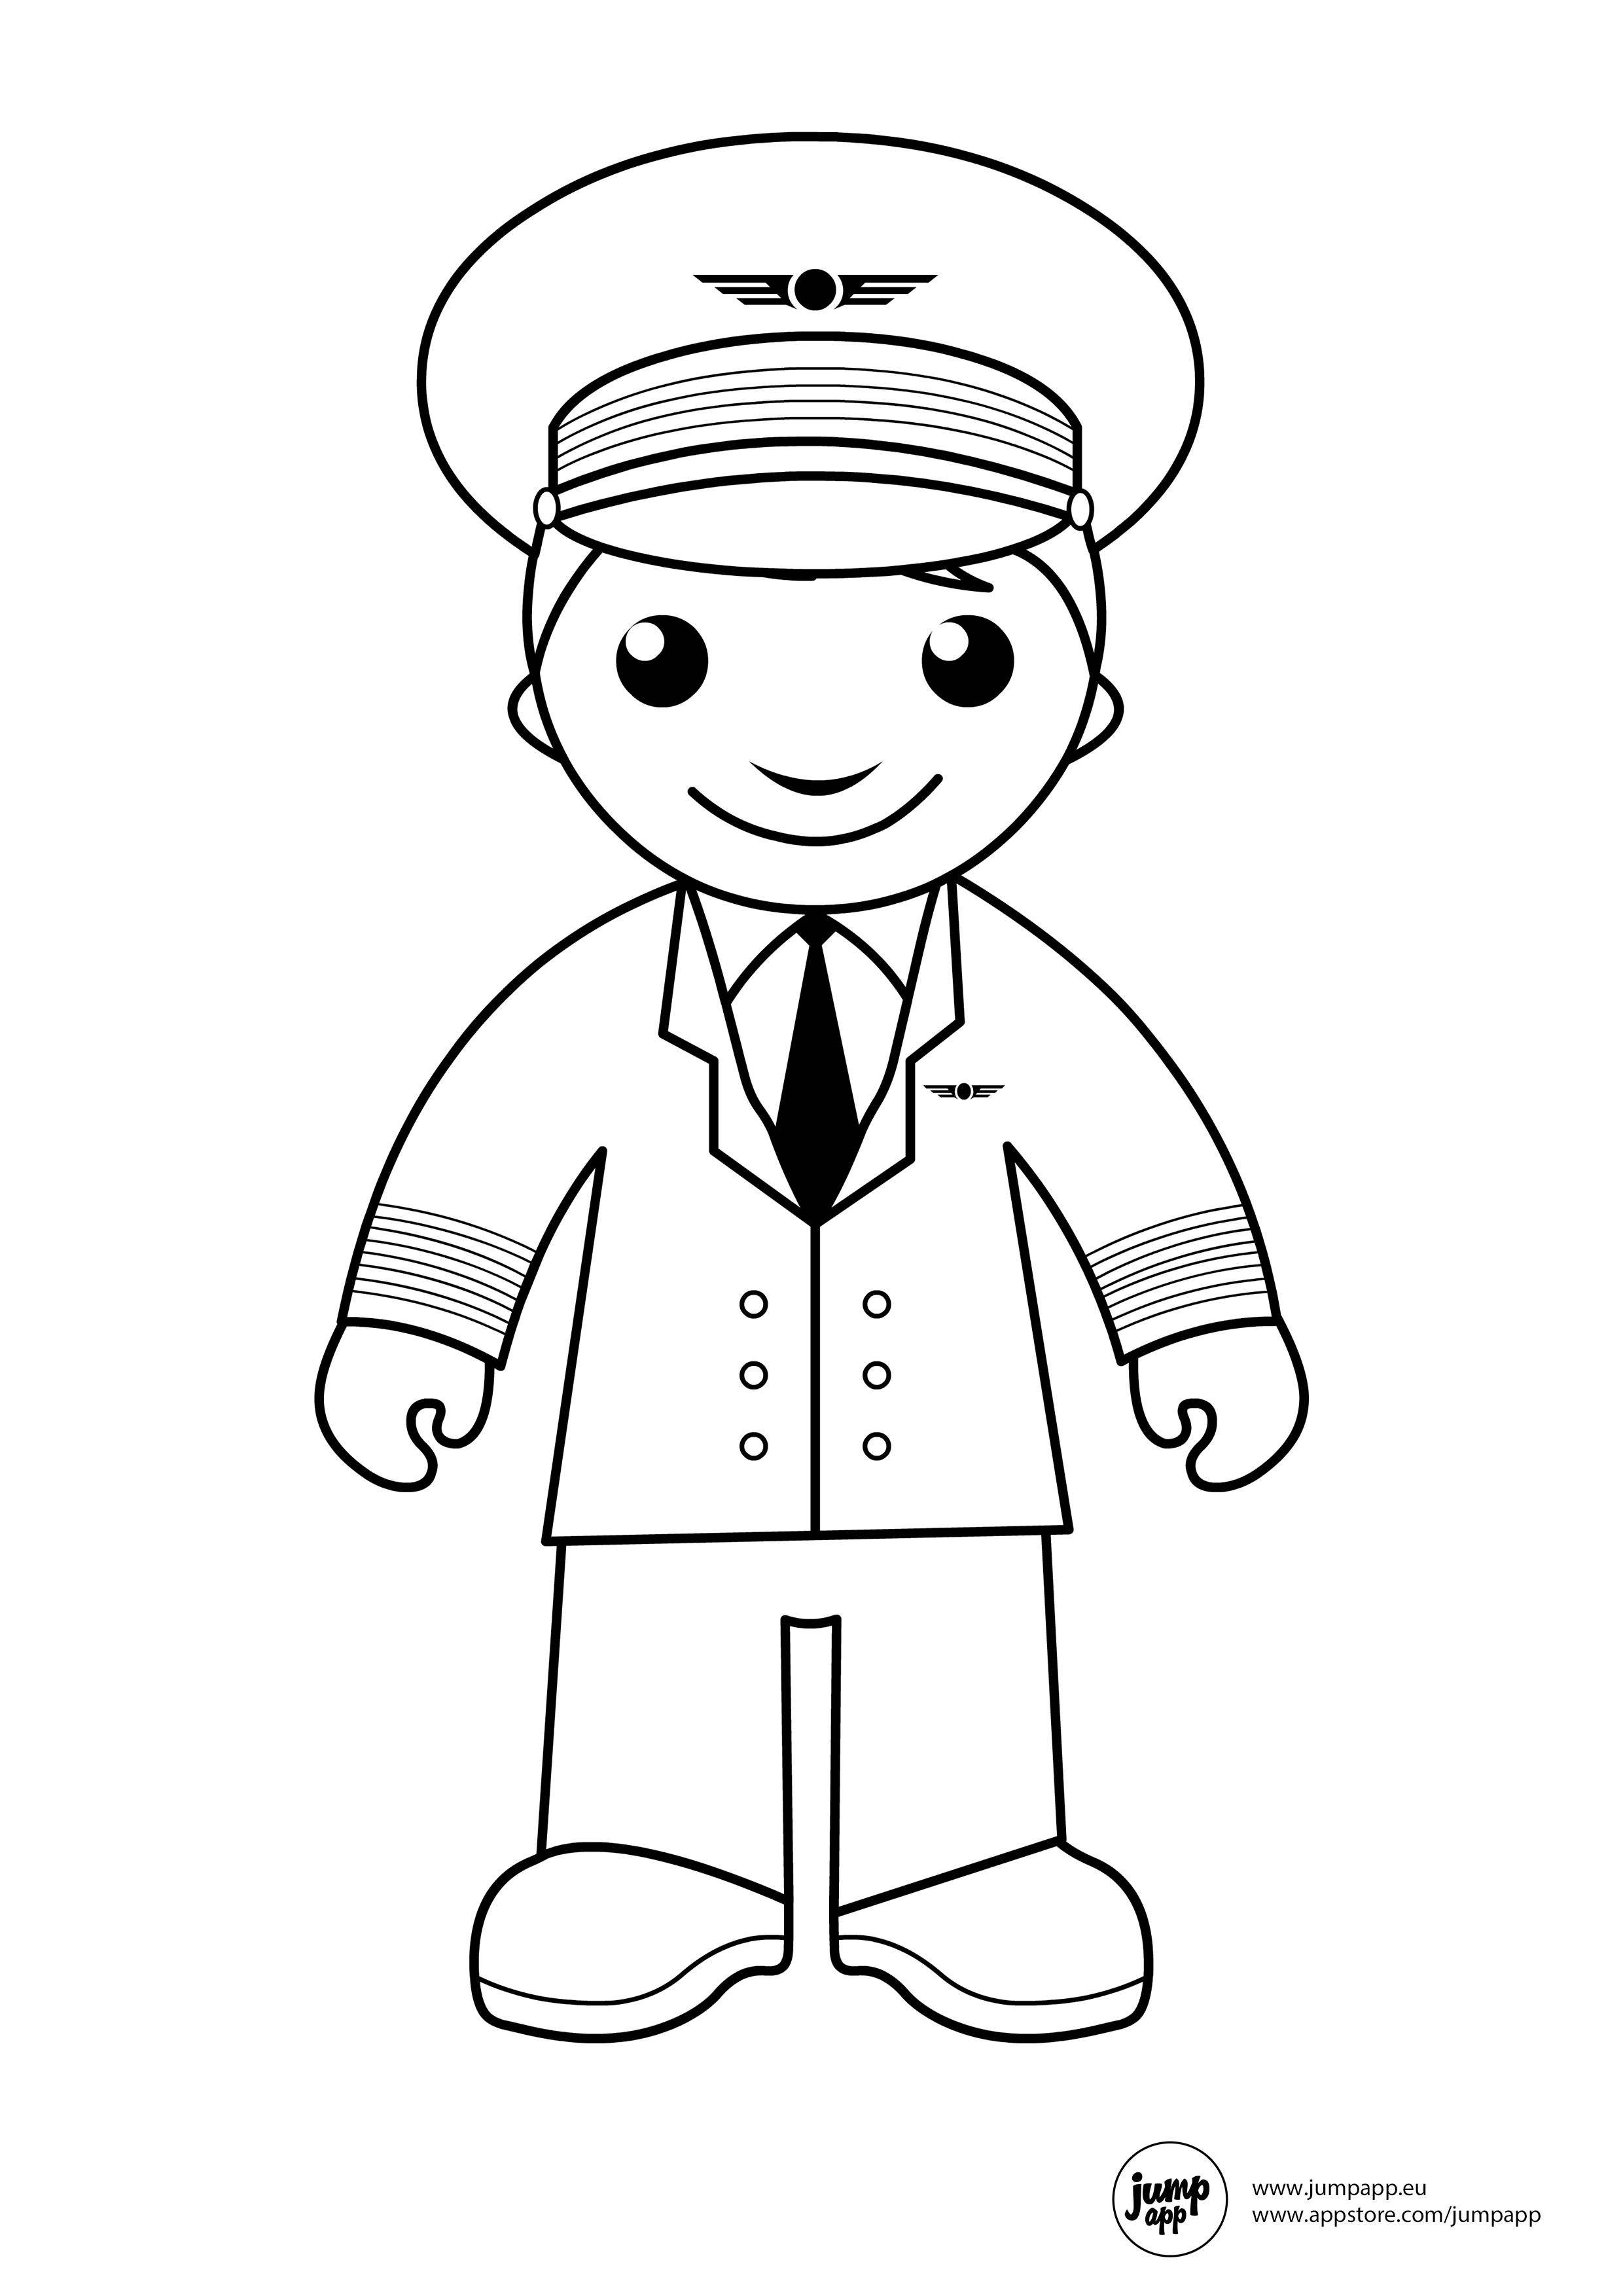 Pin By Jump App On Printable Coloring Pages